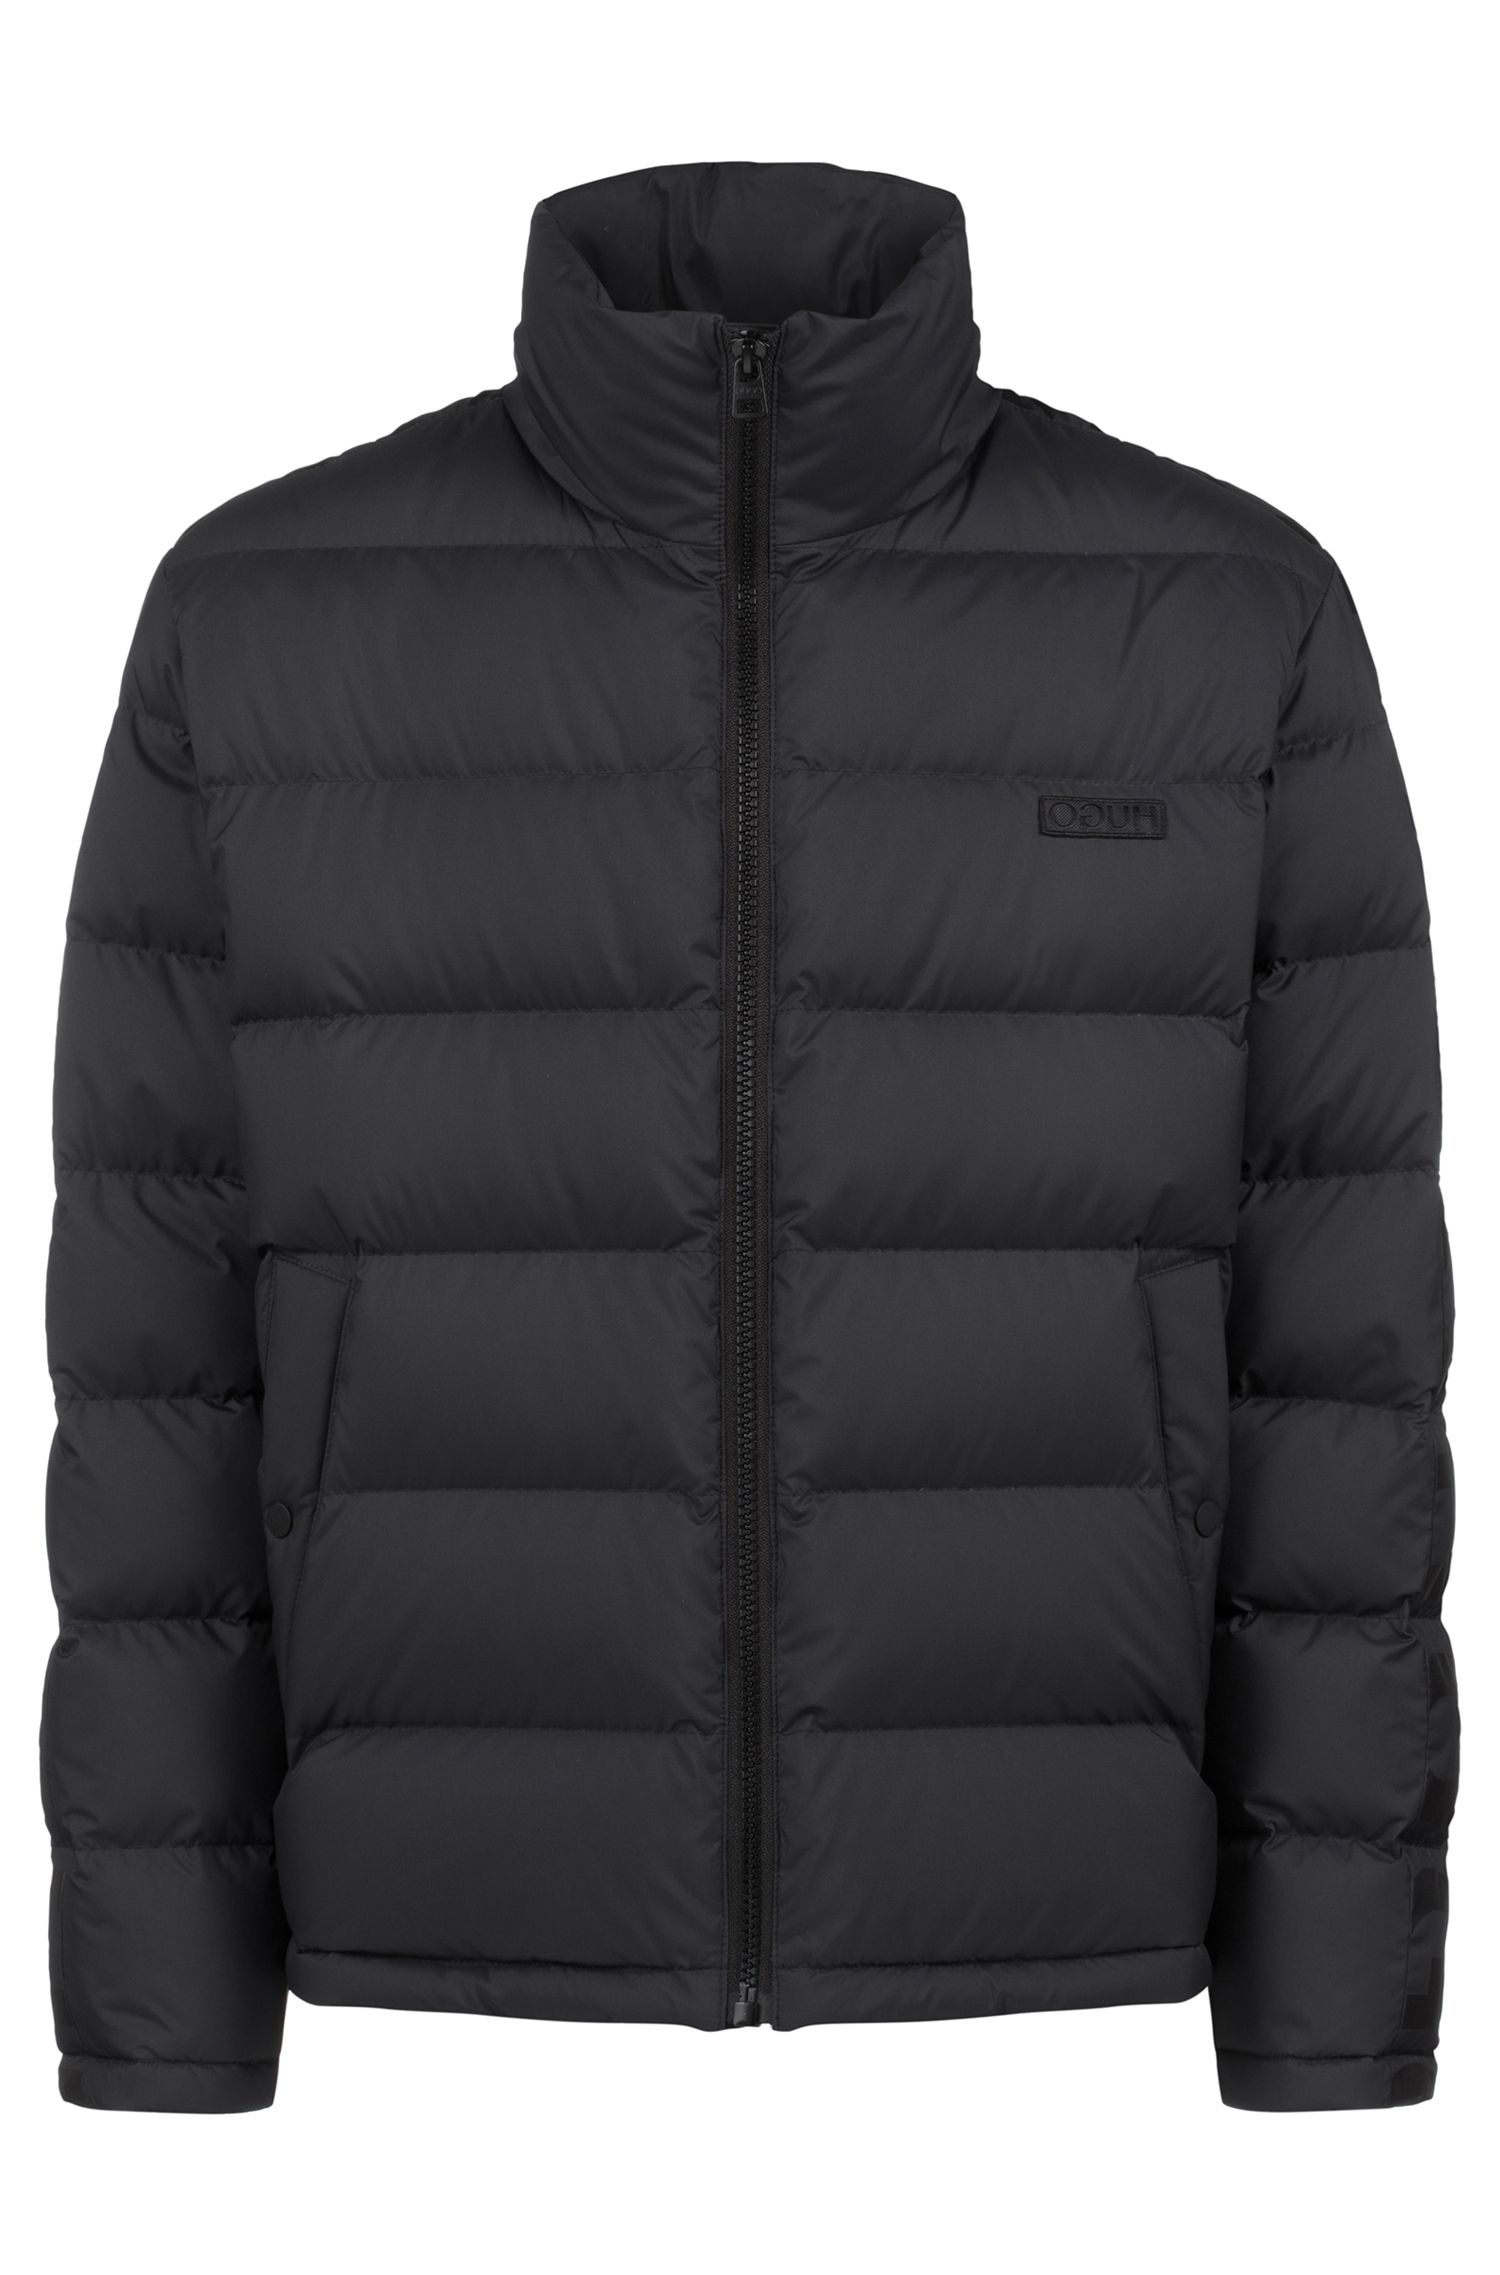 Water-repellent down jacket with logo-tape detailing, Black